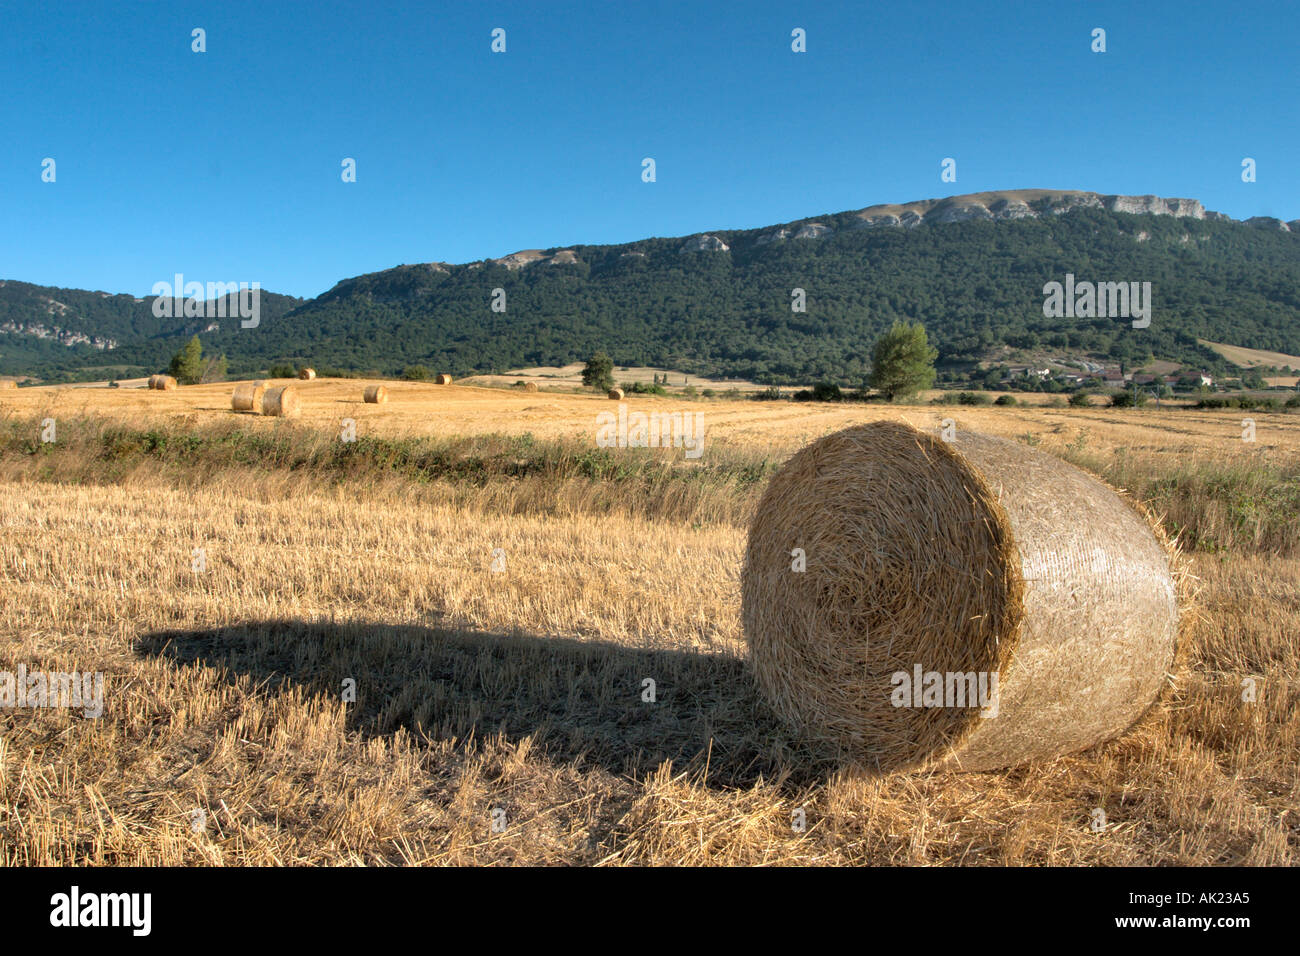 Landscape west of Pamplona, Navarra, Basque Country, Spain - Stock Image